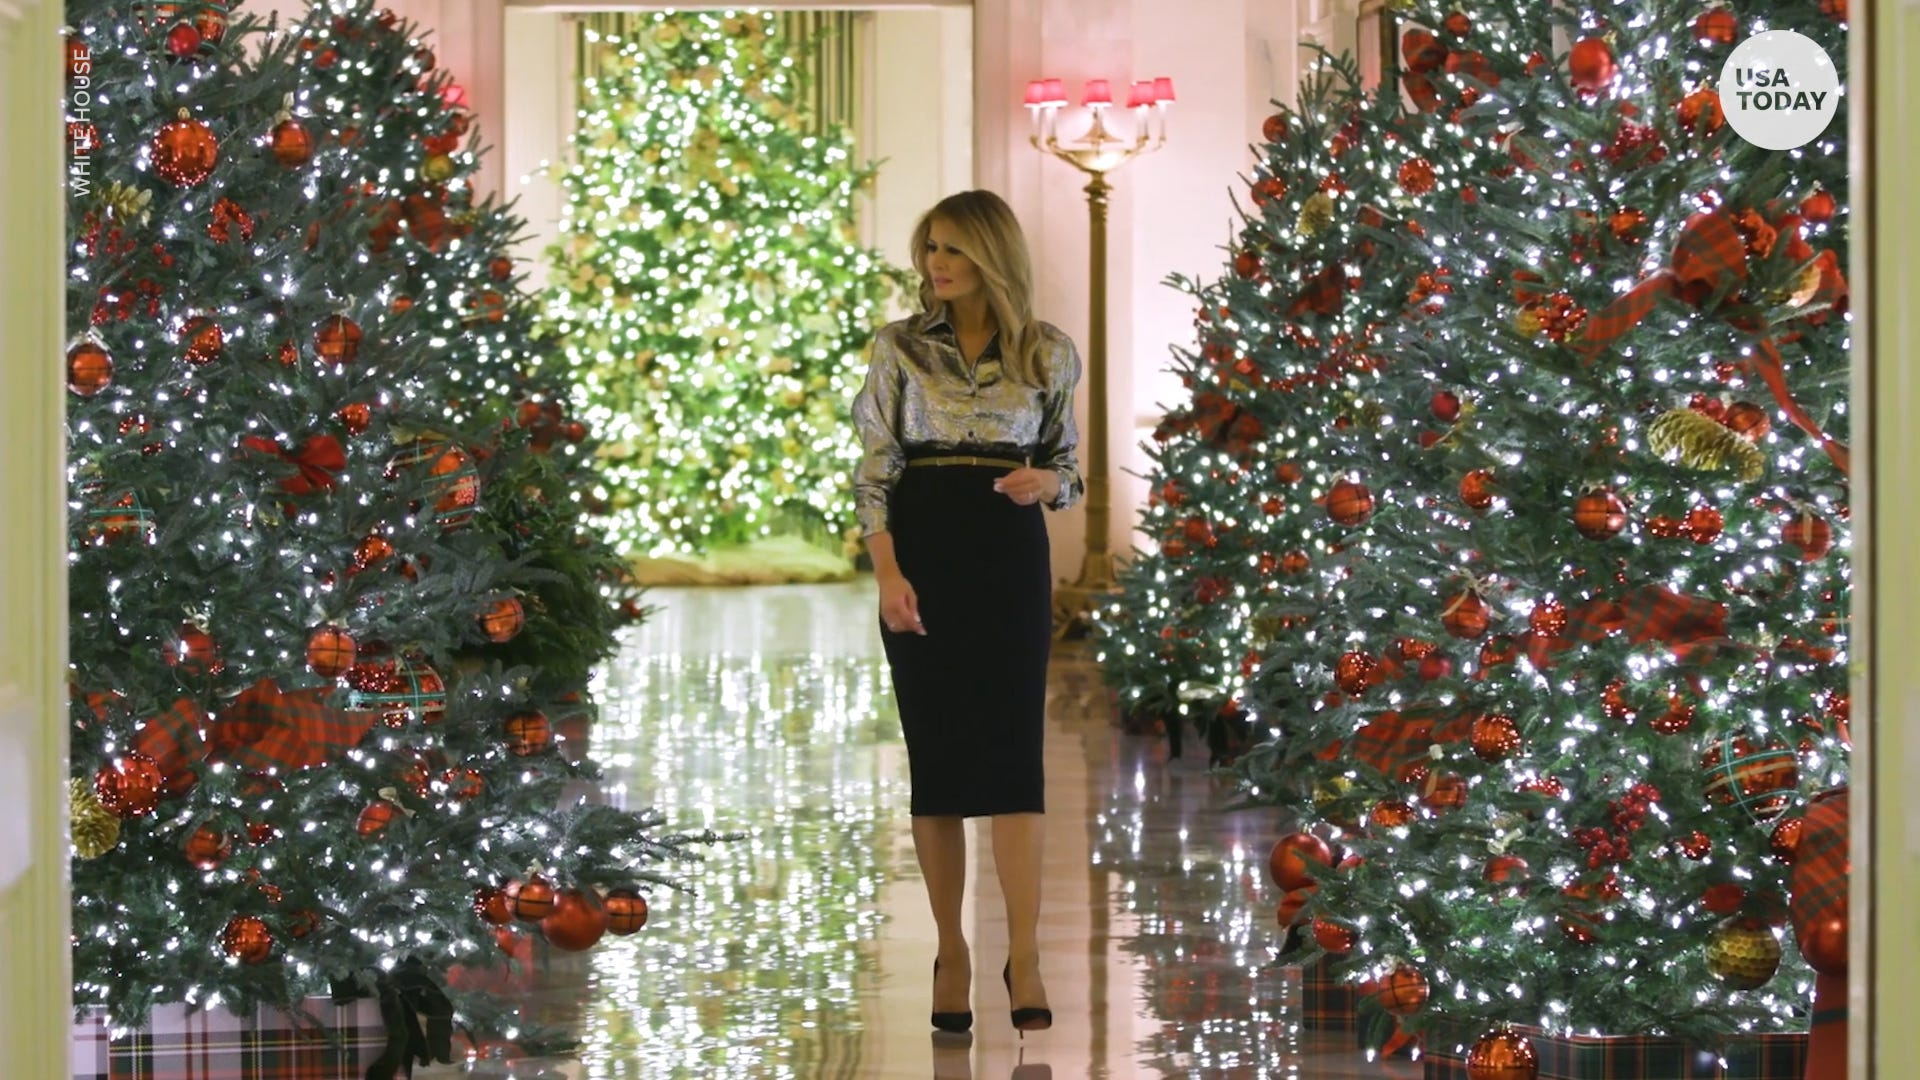 Whitehouse Christmas Trees 2021 Melania Trump White House Christmas Decor Video Posted After Recording